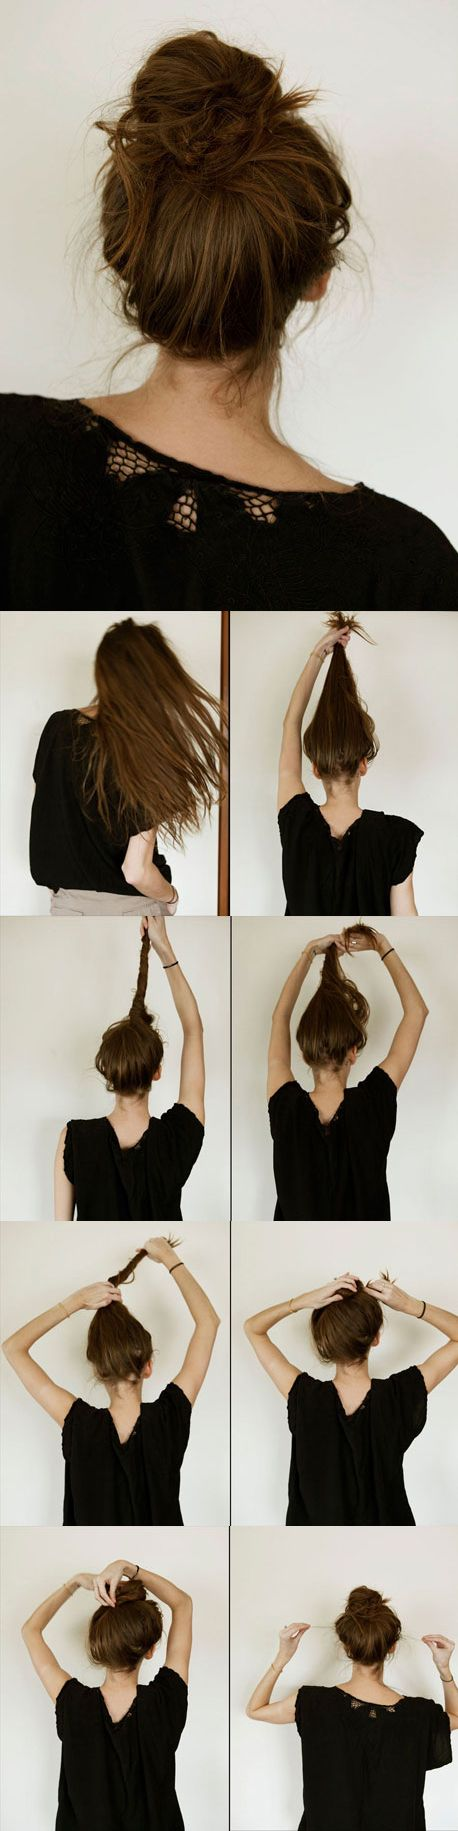 Super Easy Knotted Bun Updo And Simple Bun Hairstyle Tutorials Fashion Diva Design Bun Hairstyles For Long Hair Hair Styles Cute Everyday Hairstyles